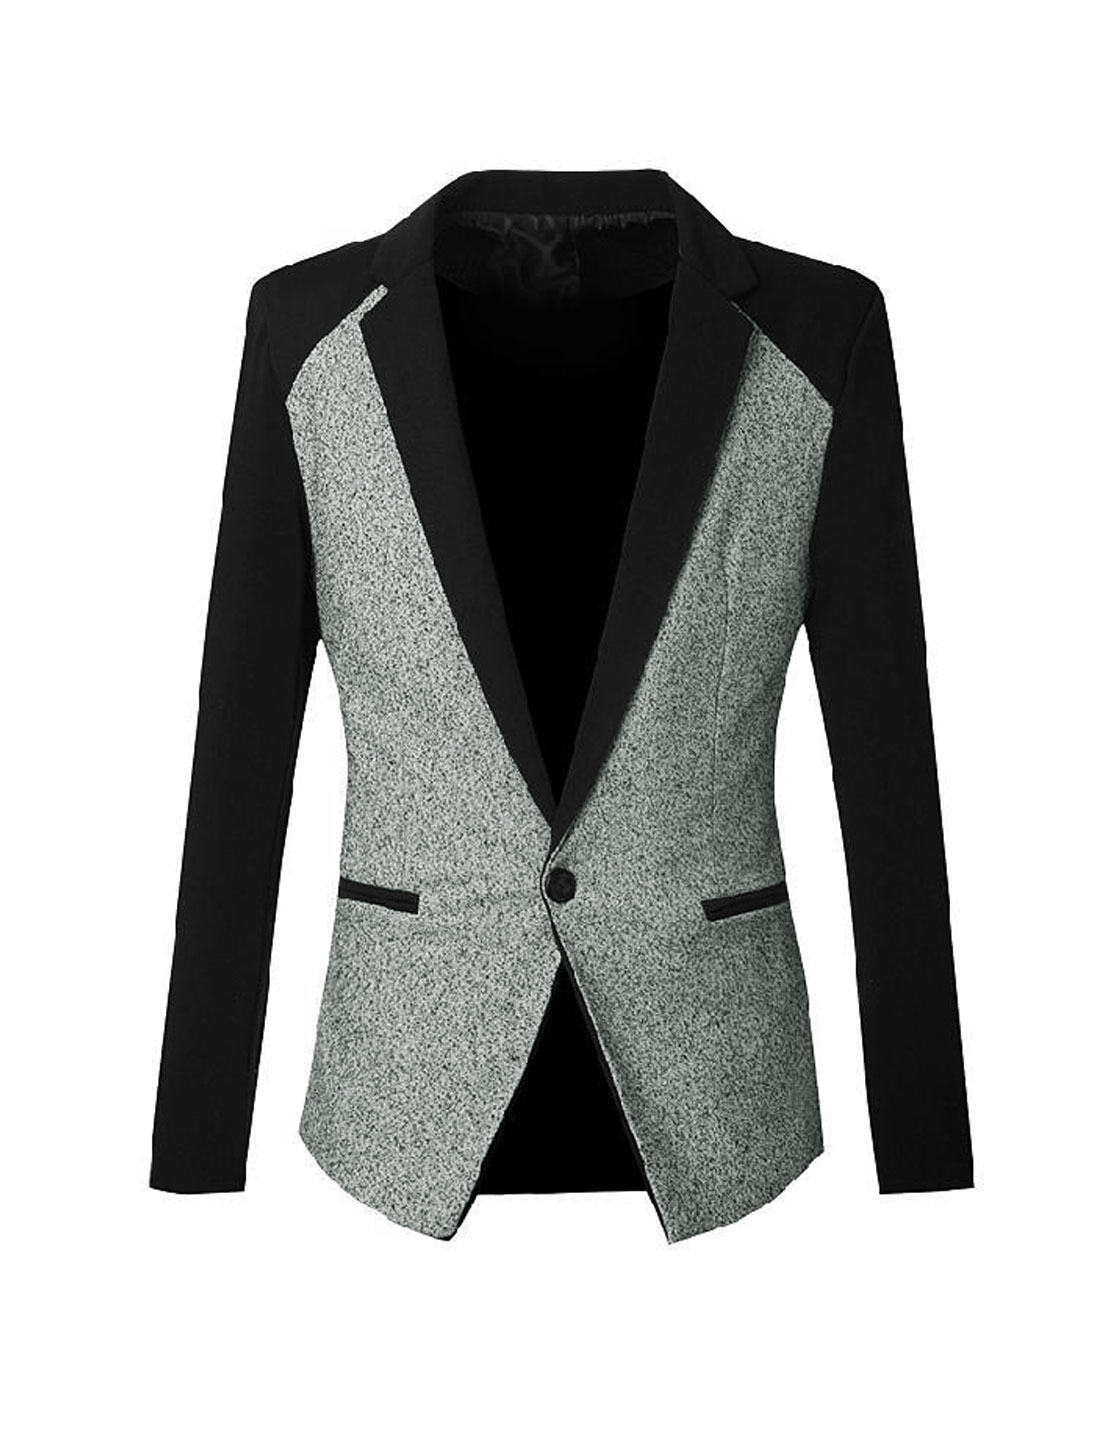 Men Long Sleeve One Button Premium Blazer Jacket Light Gray S